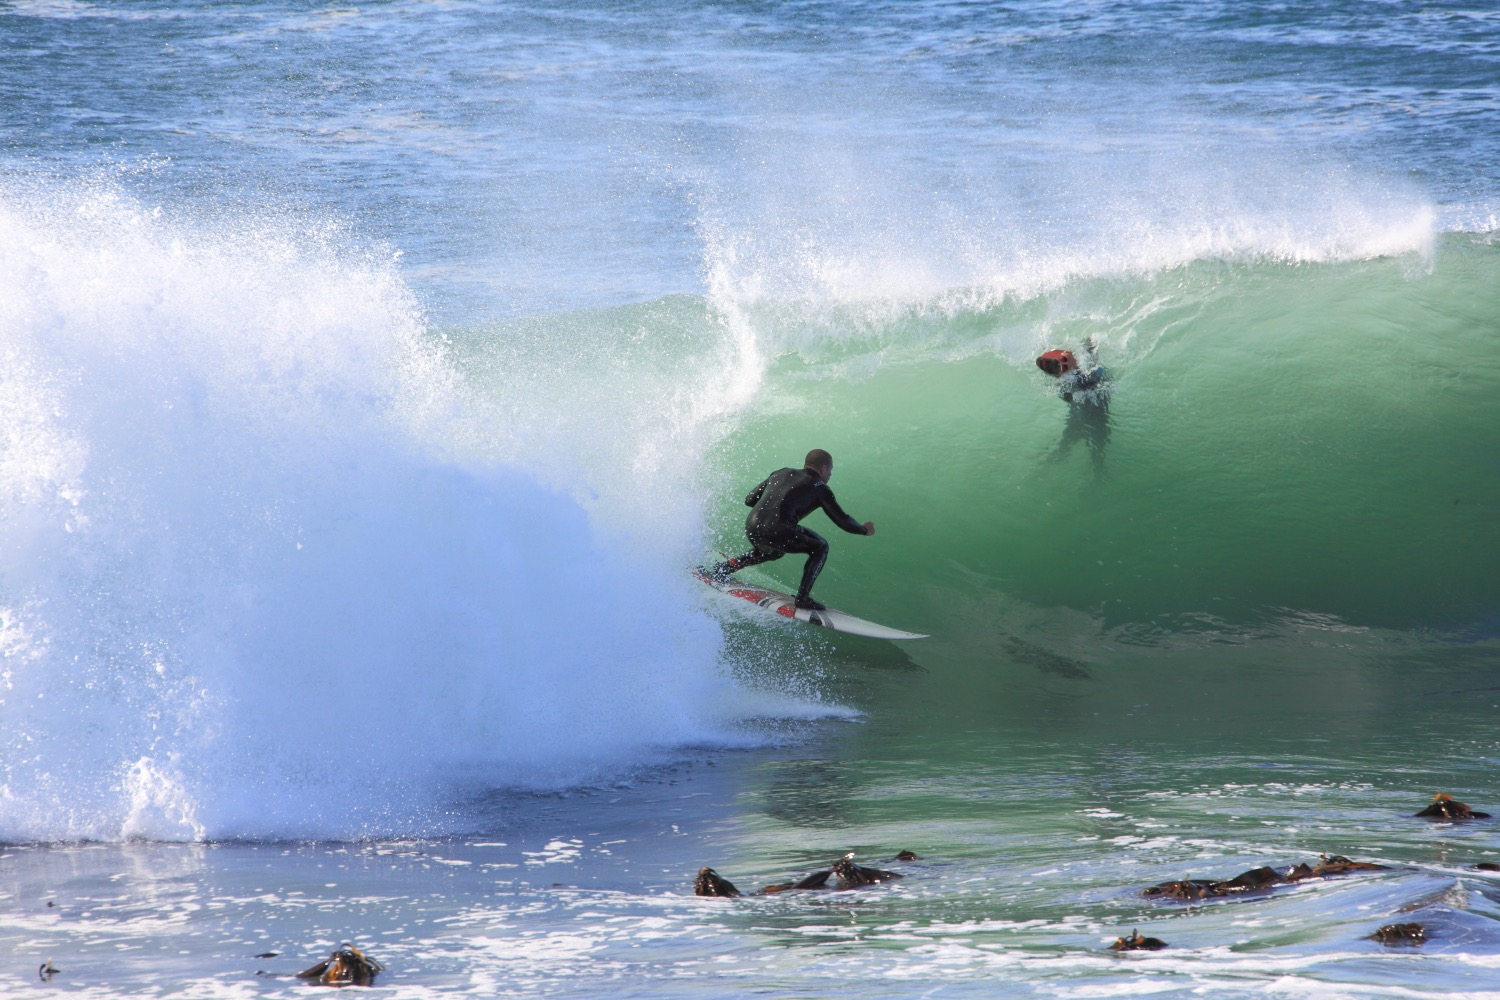 Surf in South Africa!    South African surfers... 05 March 2012. 1/640 s, f/9, ISO 320, 300 mm, EOS 5D MkII + EF 28-300 L